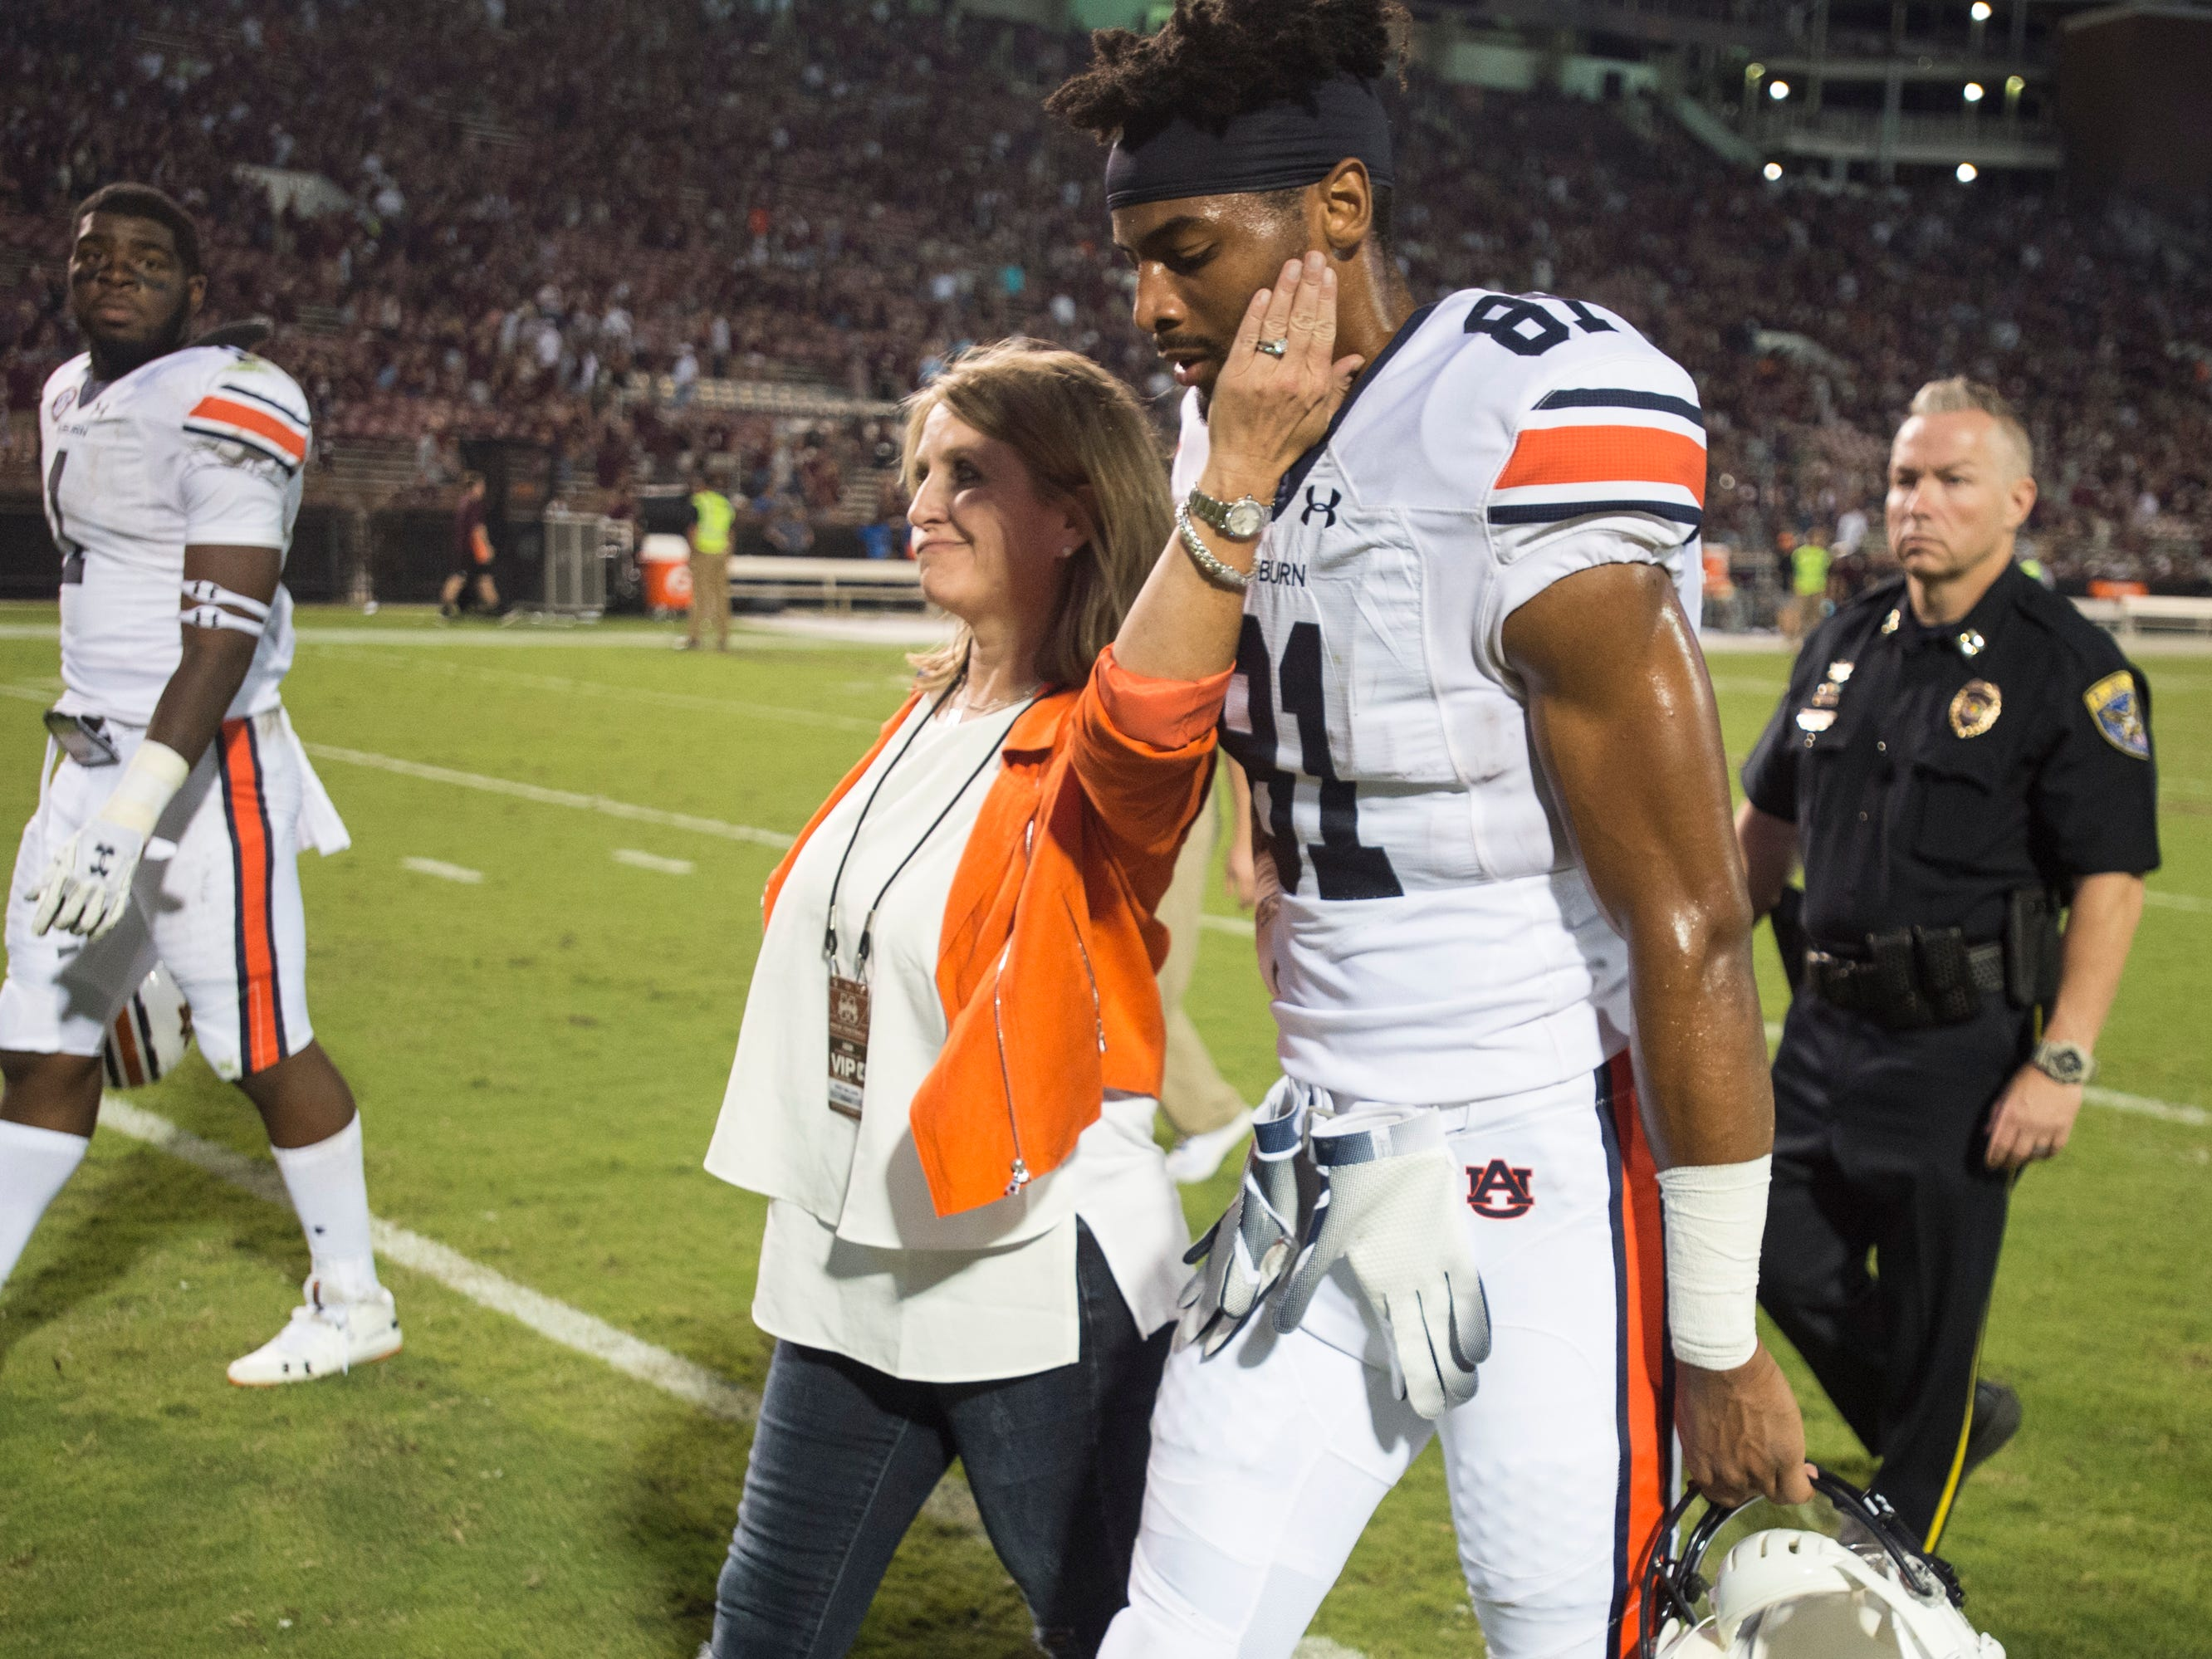 Kristi Malzahn, wife of Auburn head coach Gus Malzahn, comforts Auburn's Darius Slayton (81) as they walk off the field after the game at Davis Wade Stadium in Starkville, Miss., on Saturday, Oct. 6, 2018. Mississippi State defeated Auburn 23-9.